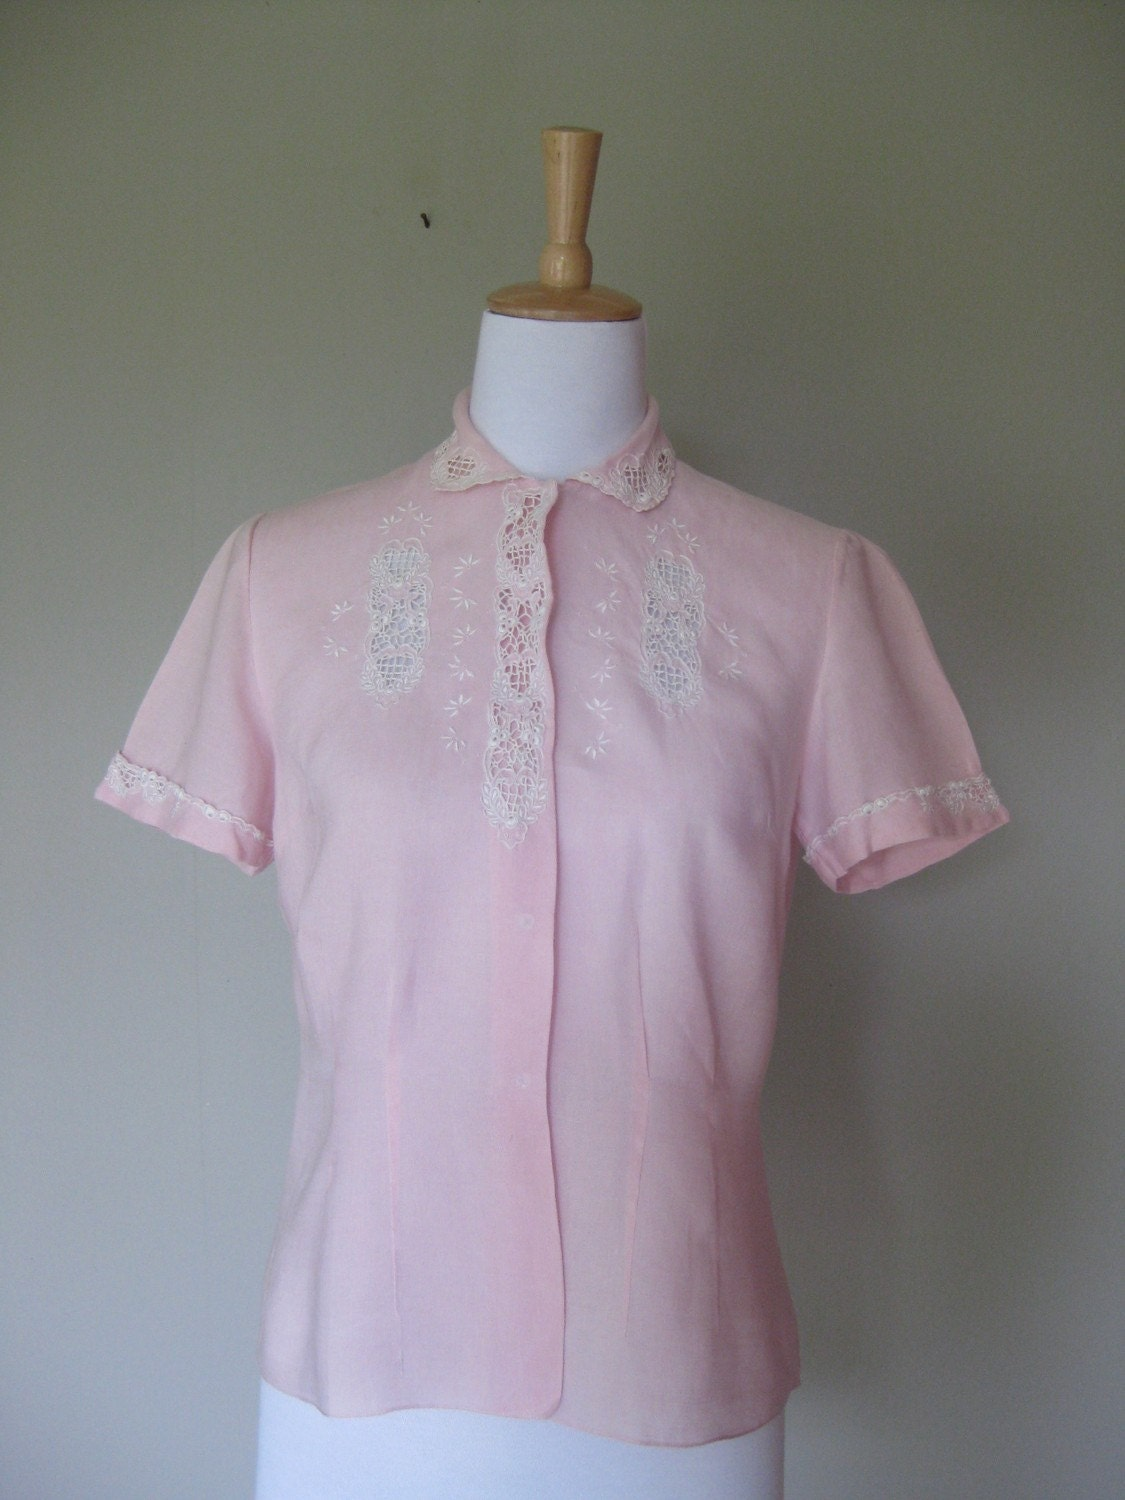 Vintage 1950's Embroidered Blouse